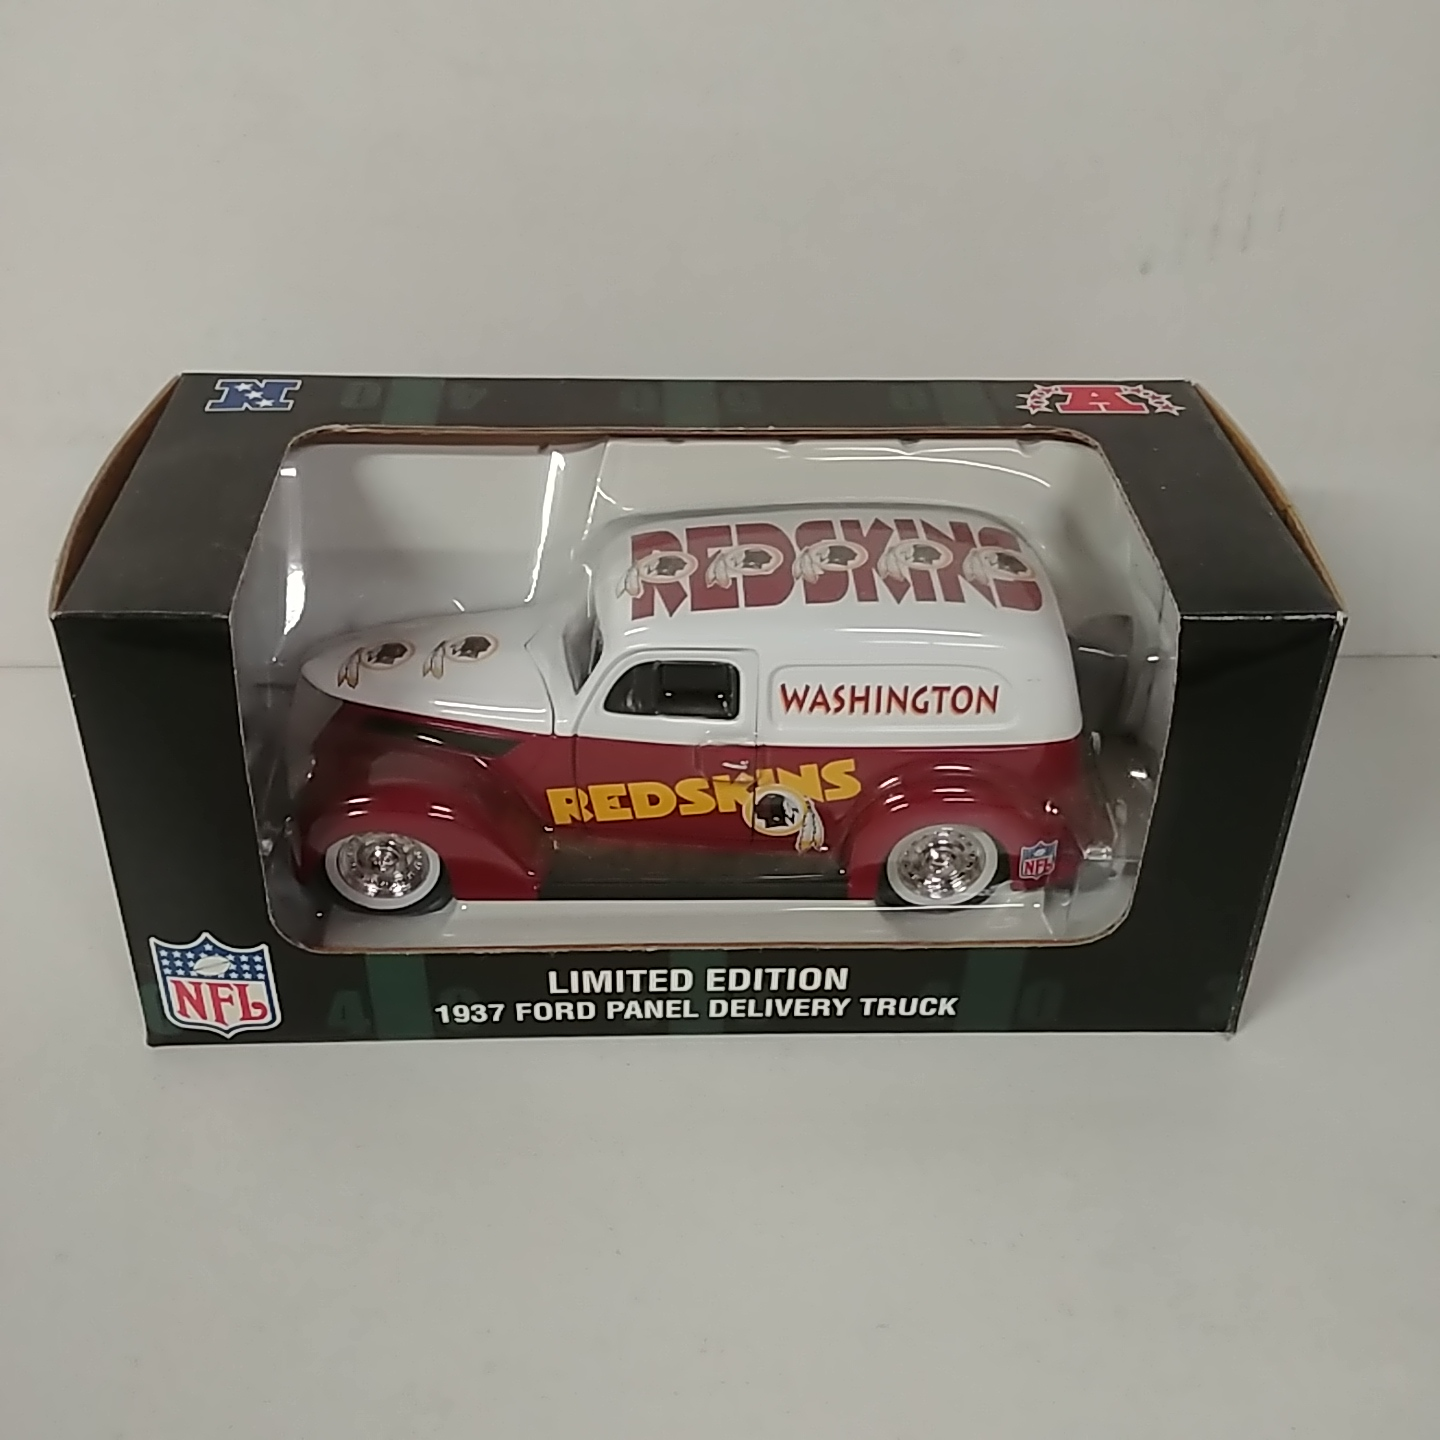 1937 Washington Redskins 1/24th Ford Panel Delivery Truck